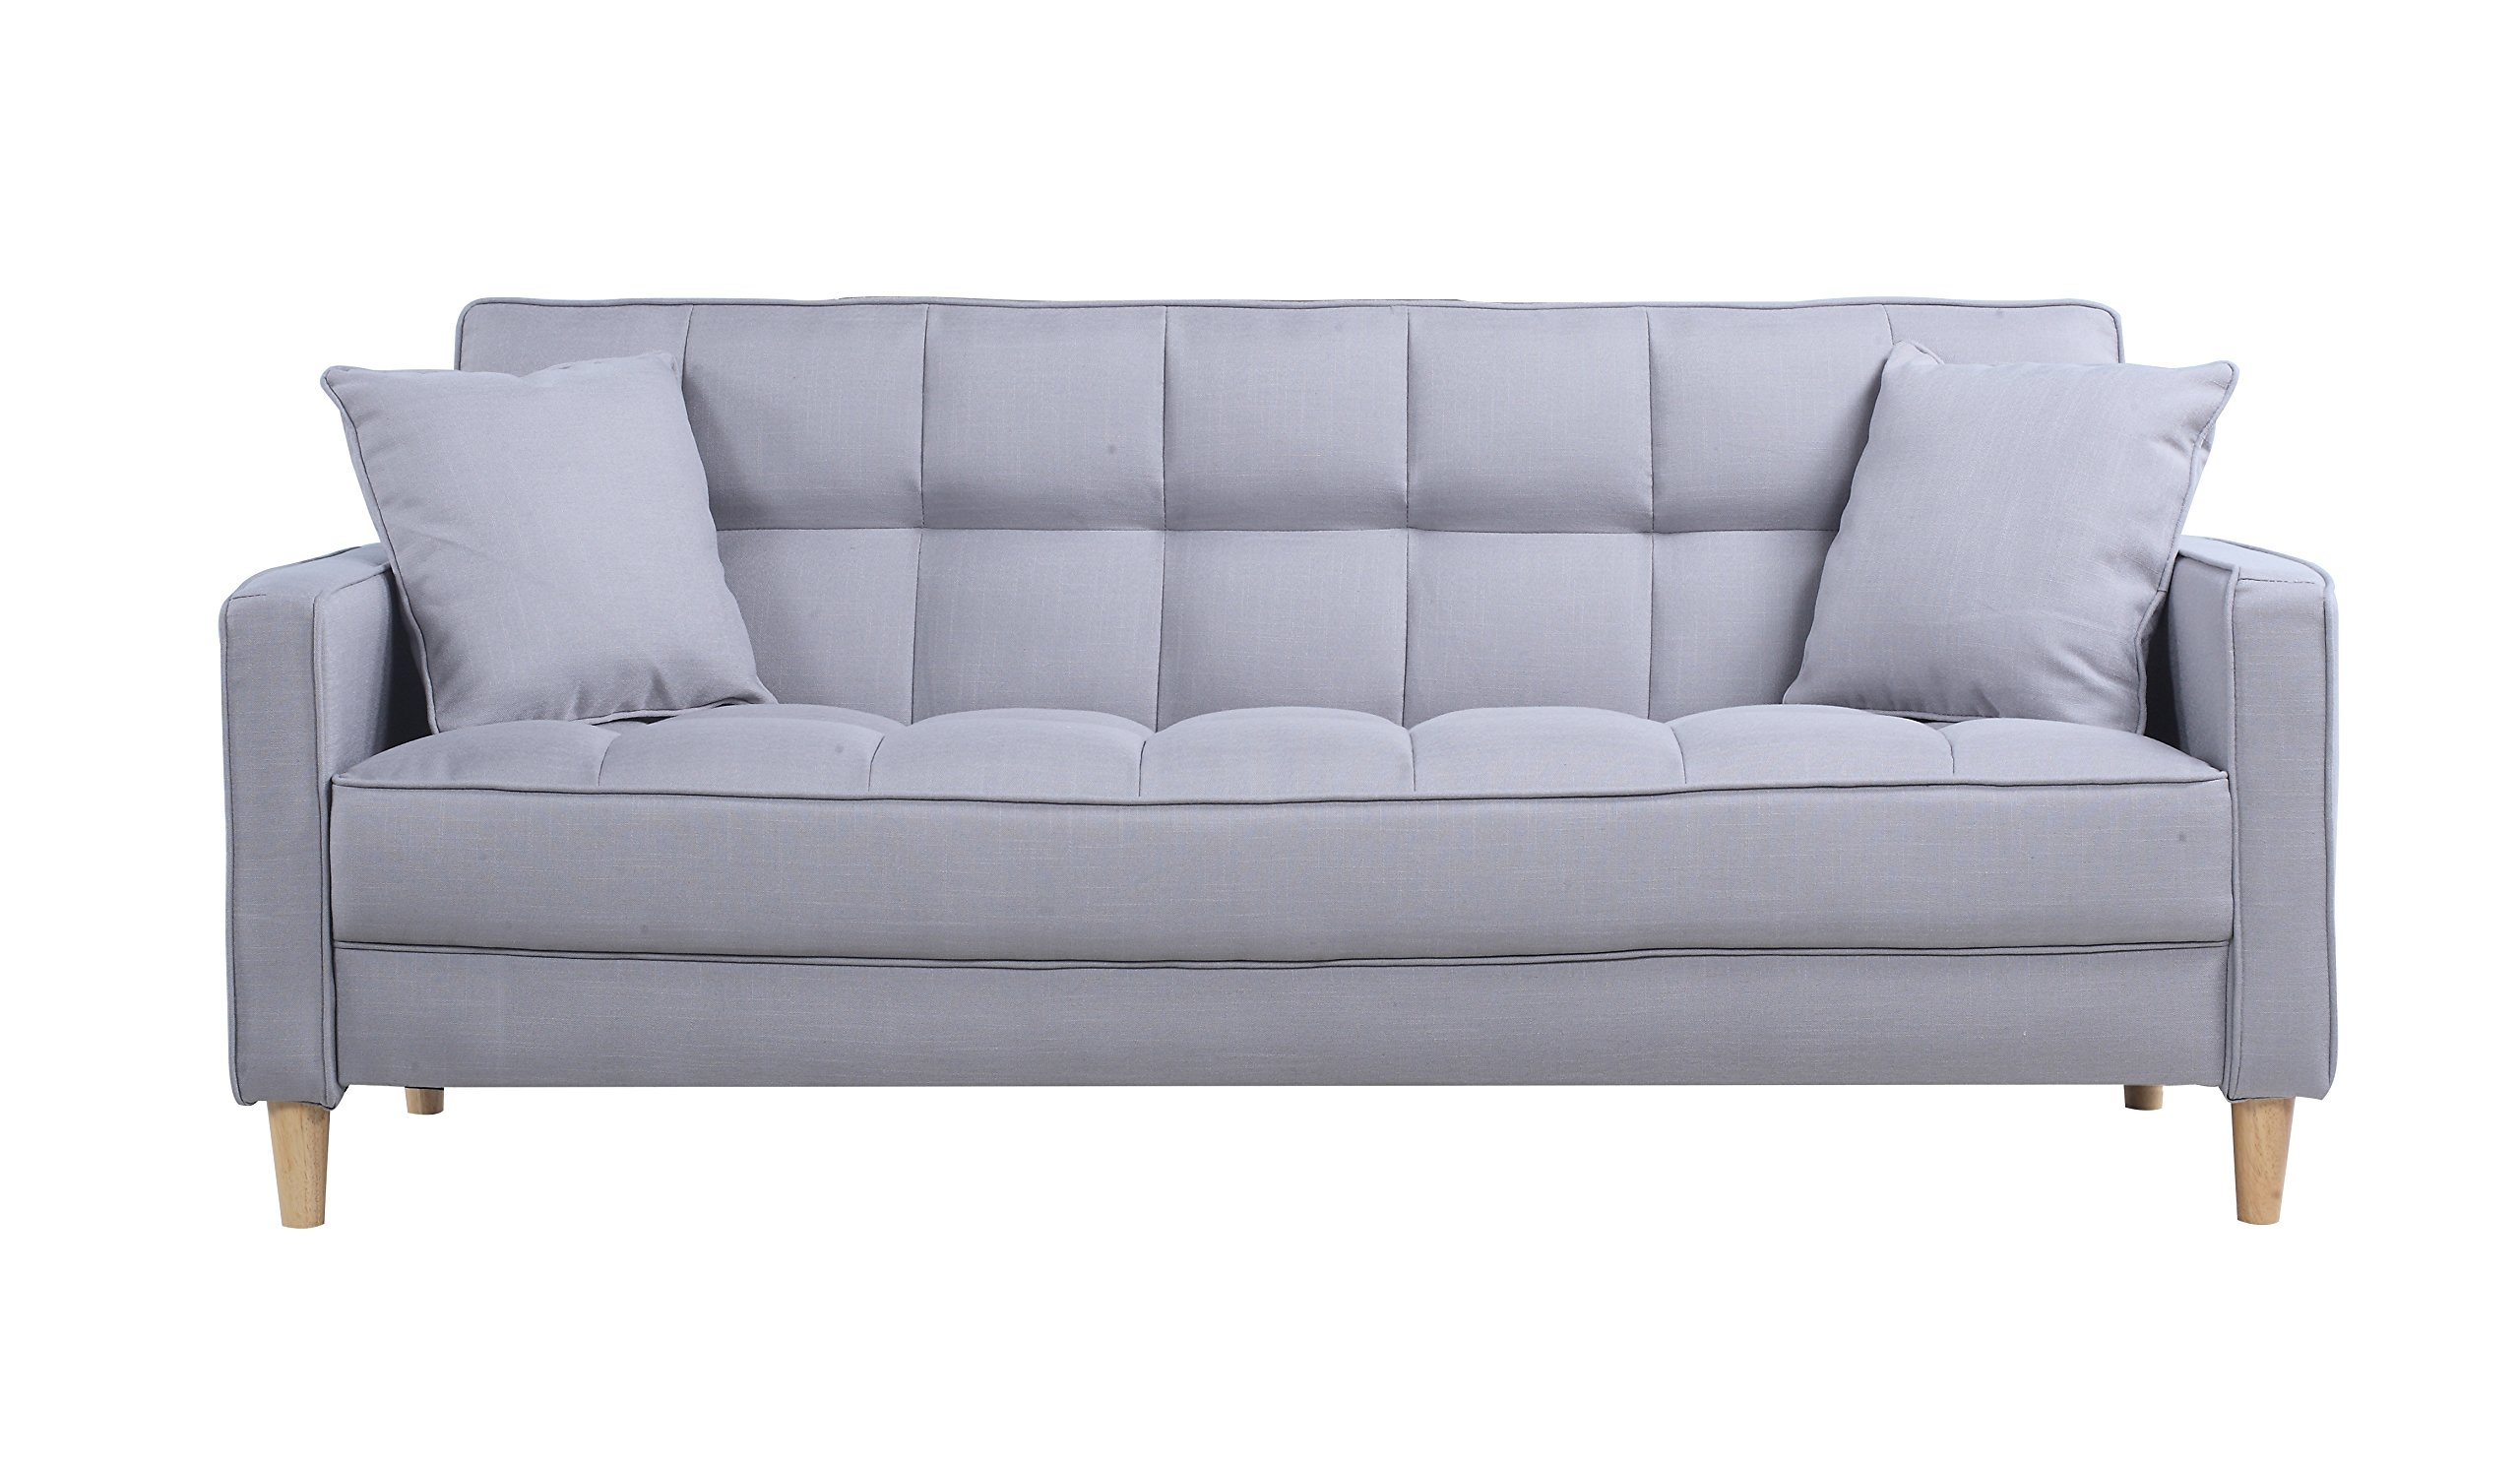 Divano Roma Furniture Modern Sofas, Light Grey - Small space mid-century style with 2 decorative pillows - Perfect for a small living room Tufted fabric upholstery on both, seat and back rest to give it a plush look and feel Available in a large variation of colors to best fit your decor and perfect size for a studio apartment or bedroom lounging - sofas-couches, living-room-furniture, living-room - 81WhO%2BscL0L -